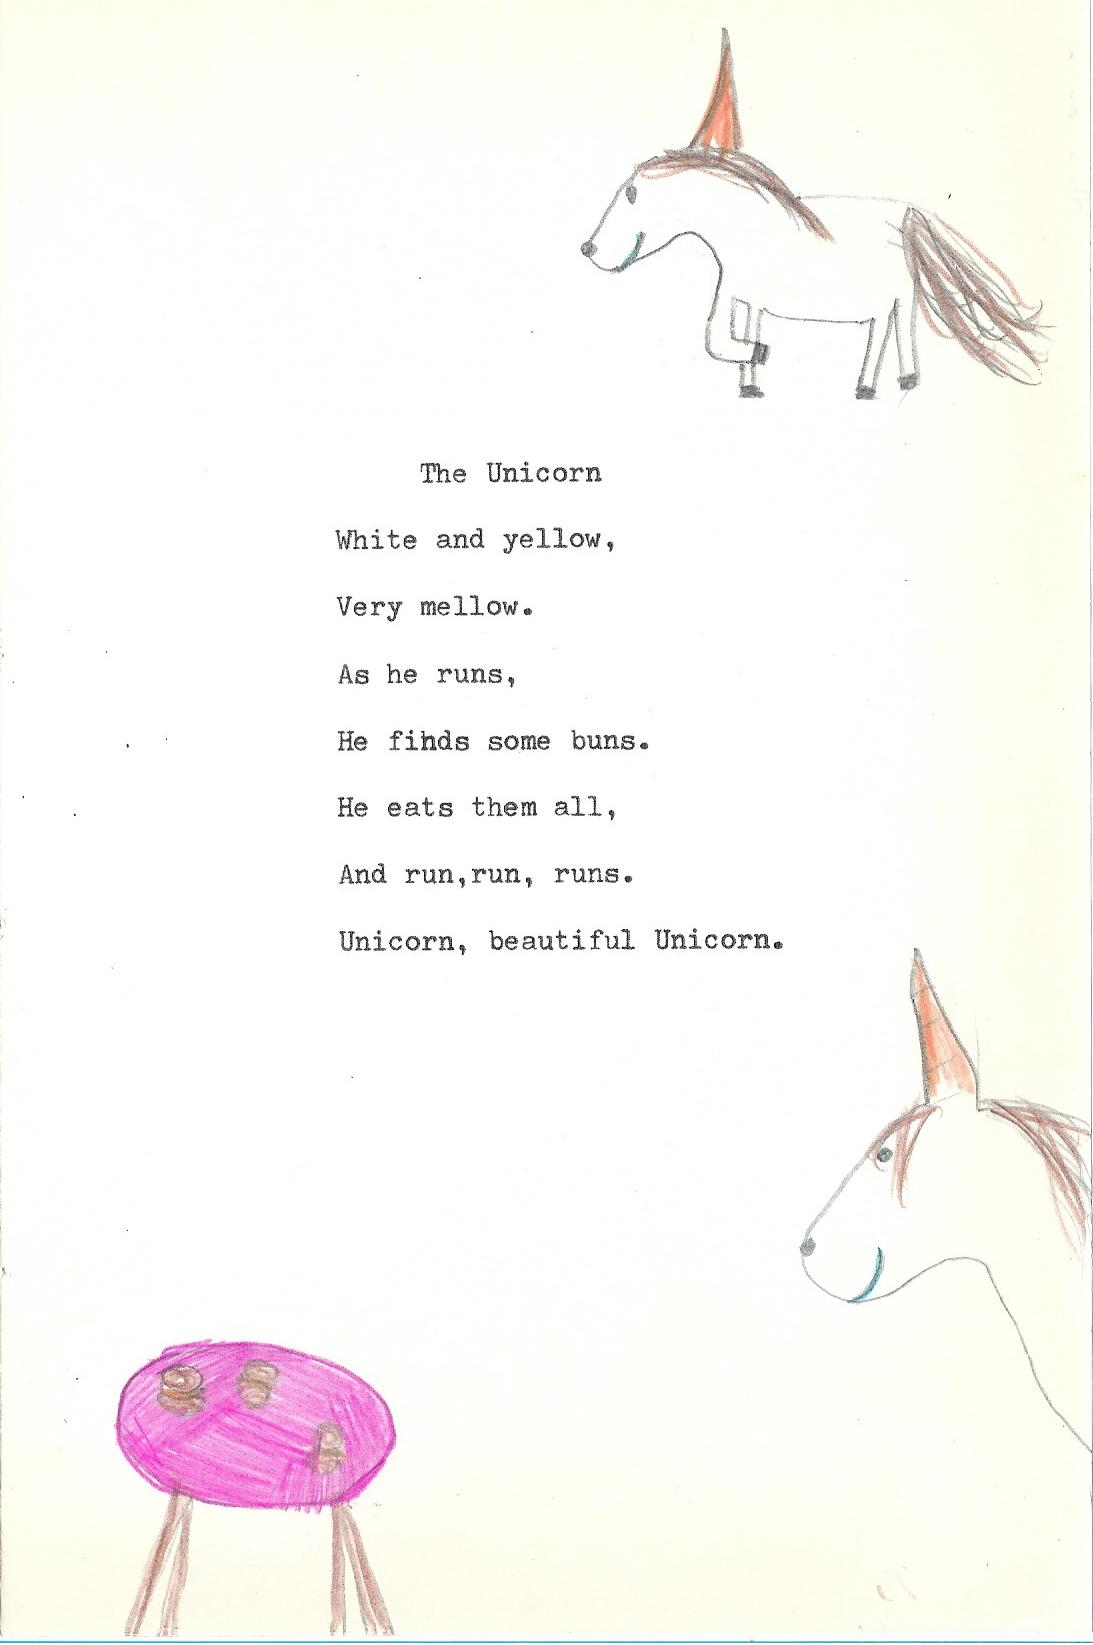 unicorn kids poem